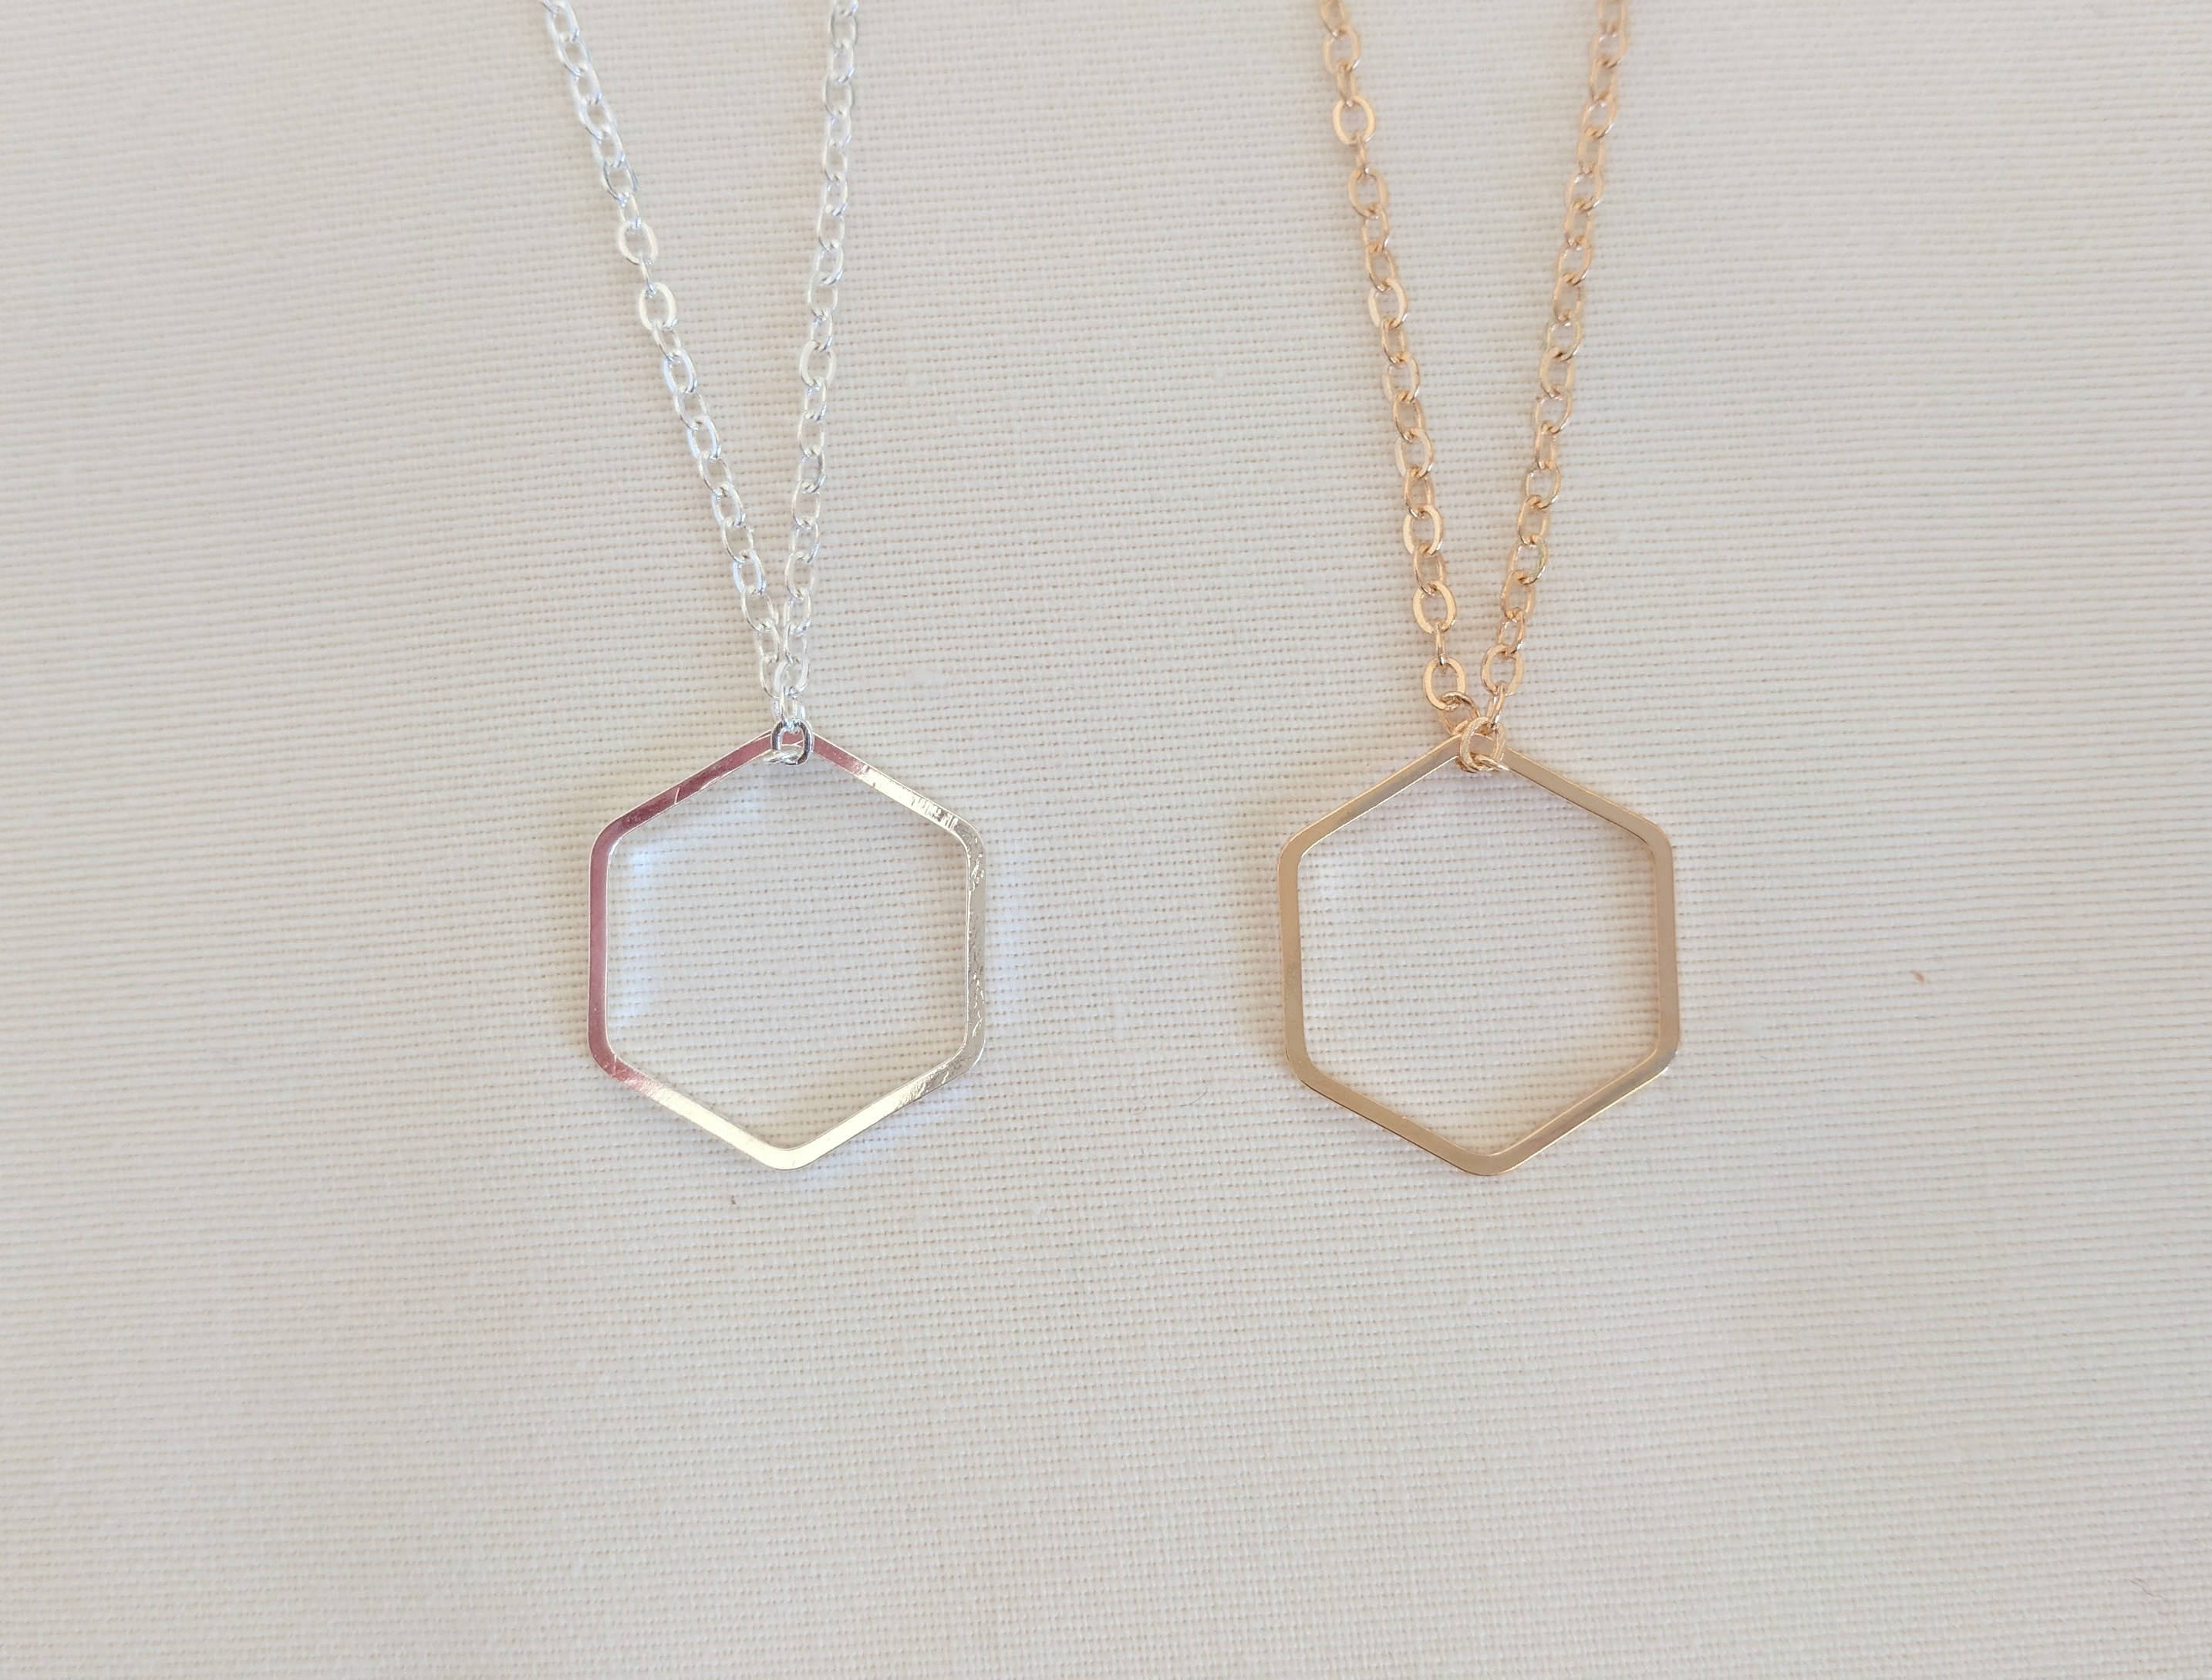 Hexagon Necklace | Geometric Necklace | Layering Necklace | Minimalist Necklace